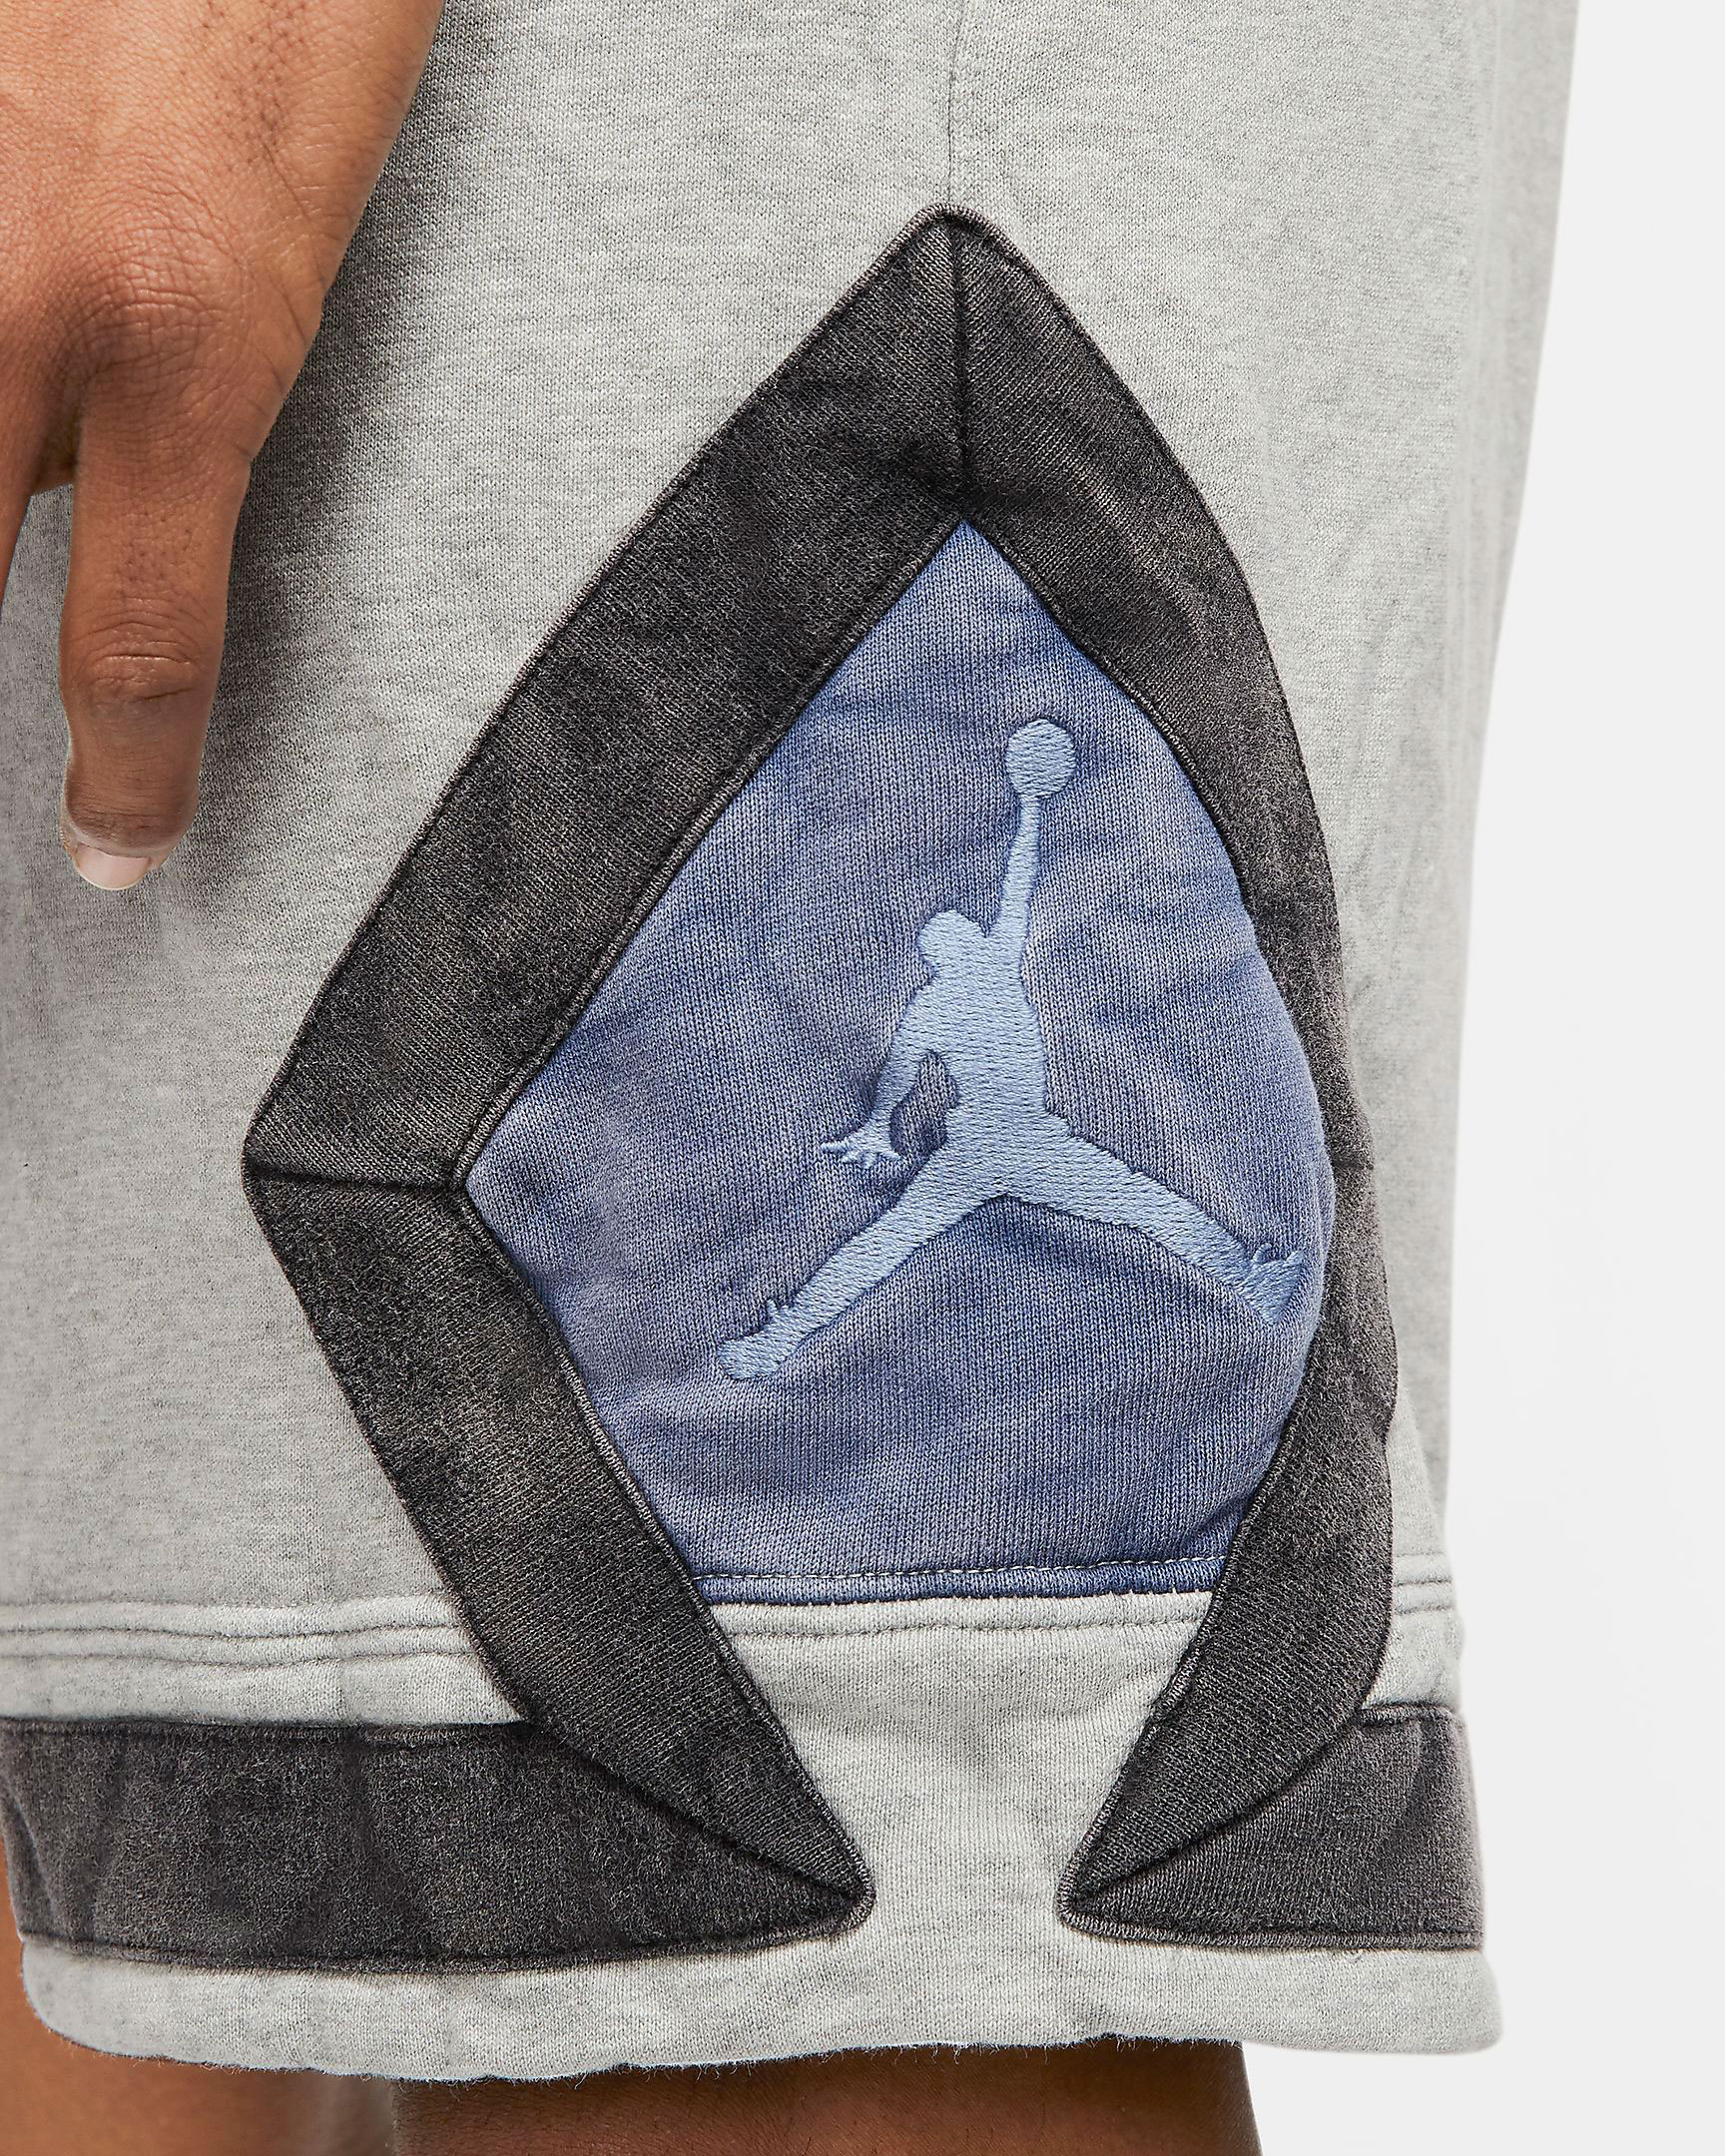 flint-air-jordan-13-shorts-grey-3